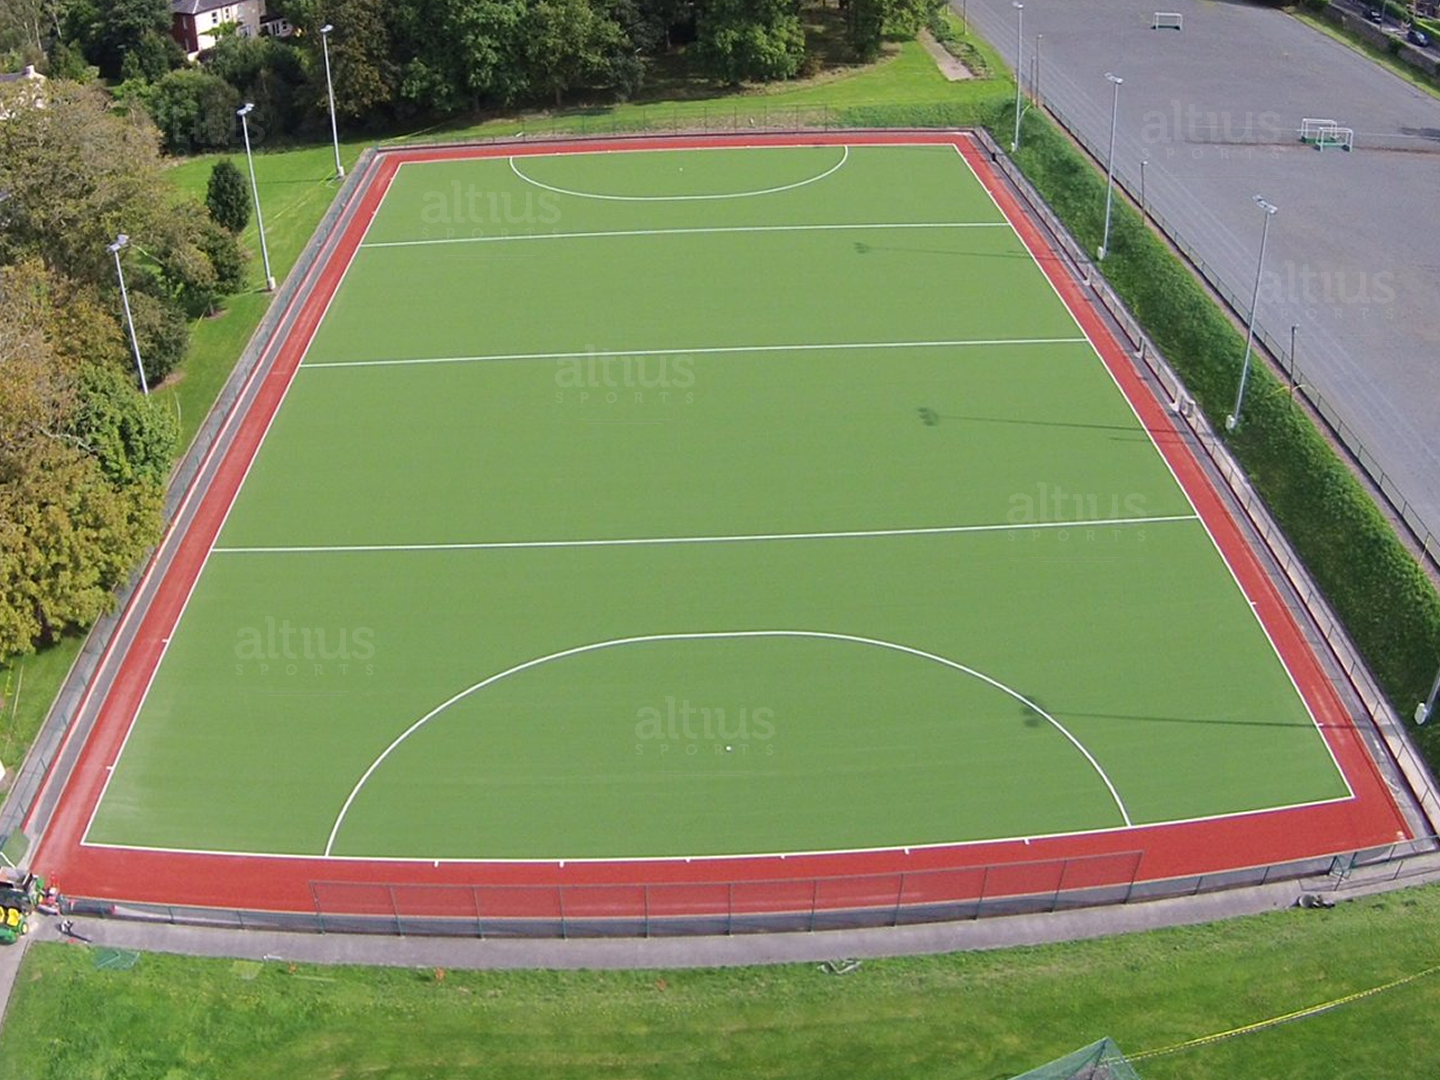 altiussports artificial turf, synthetic turf